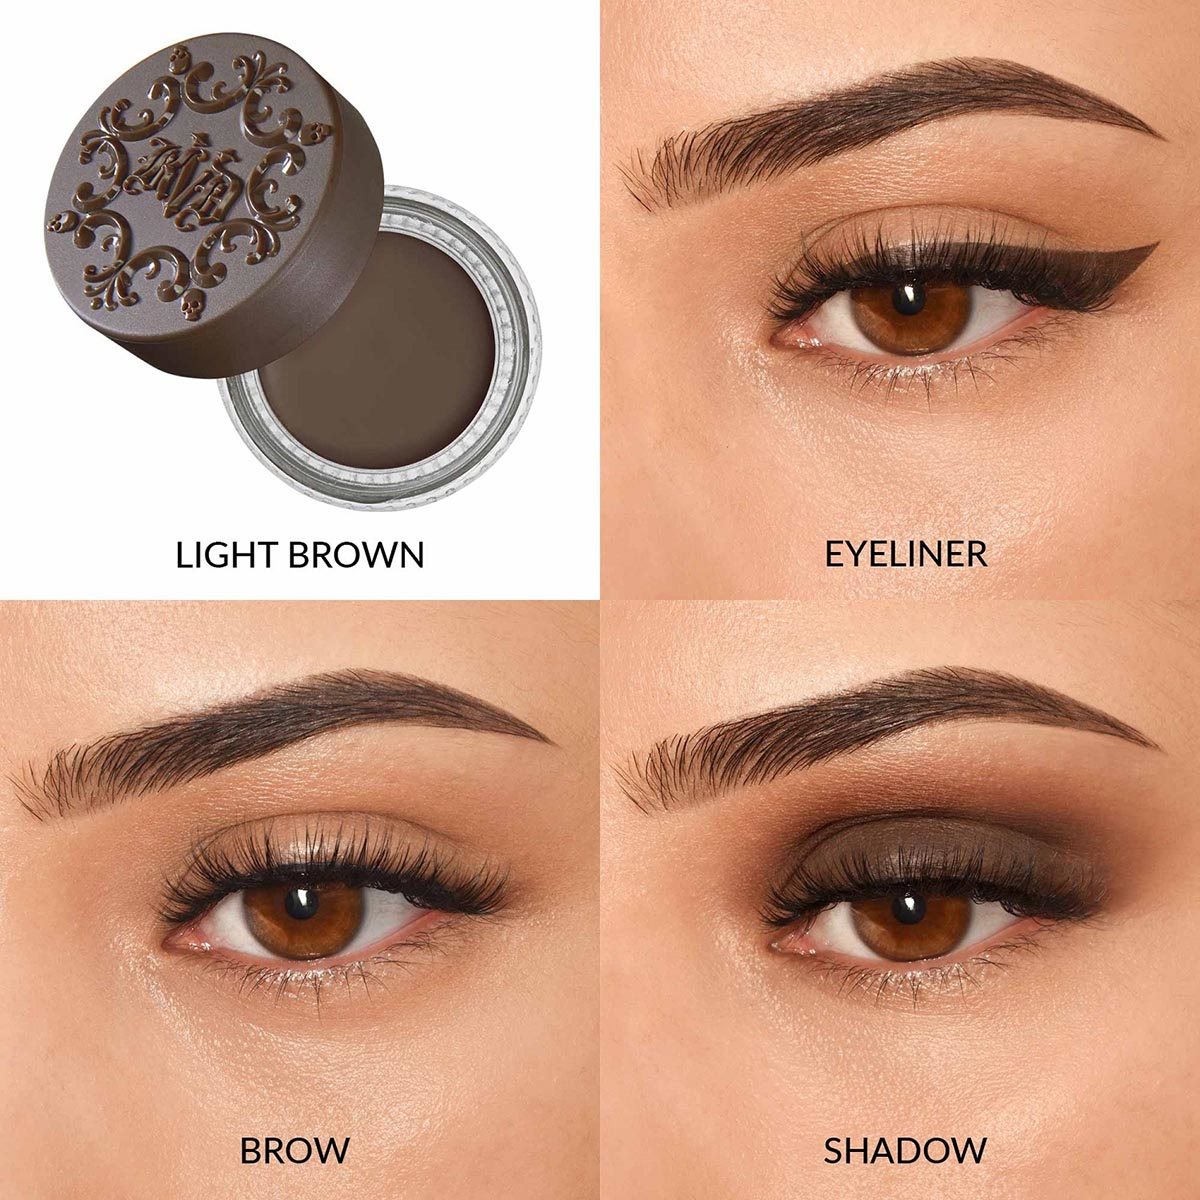 SUPER POMADE VEGAN EYELINER, SHADOW & BROW PIGMENT